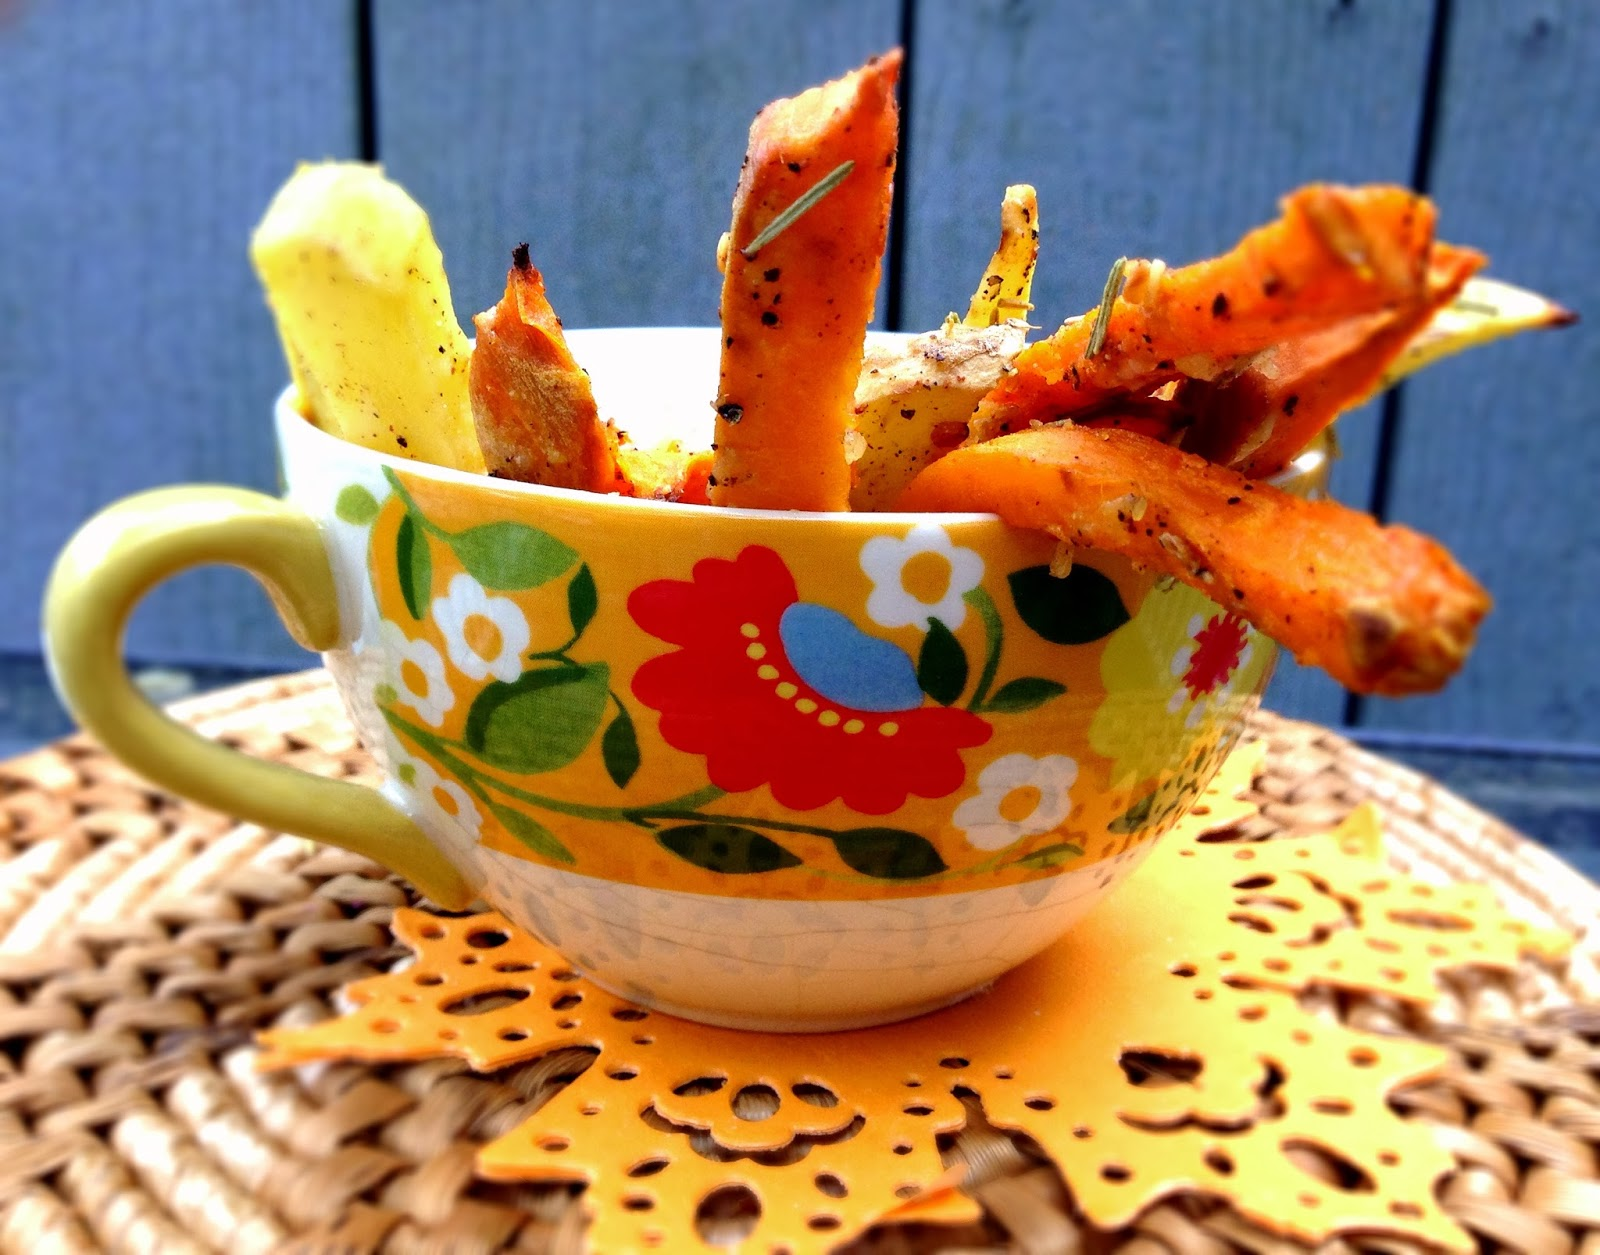 Oven Baked Rosemary Parmesan Sweet Potato Fries |Noms McGee